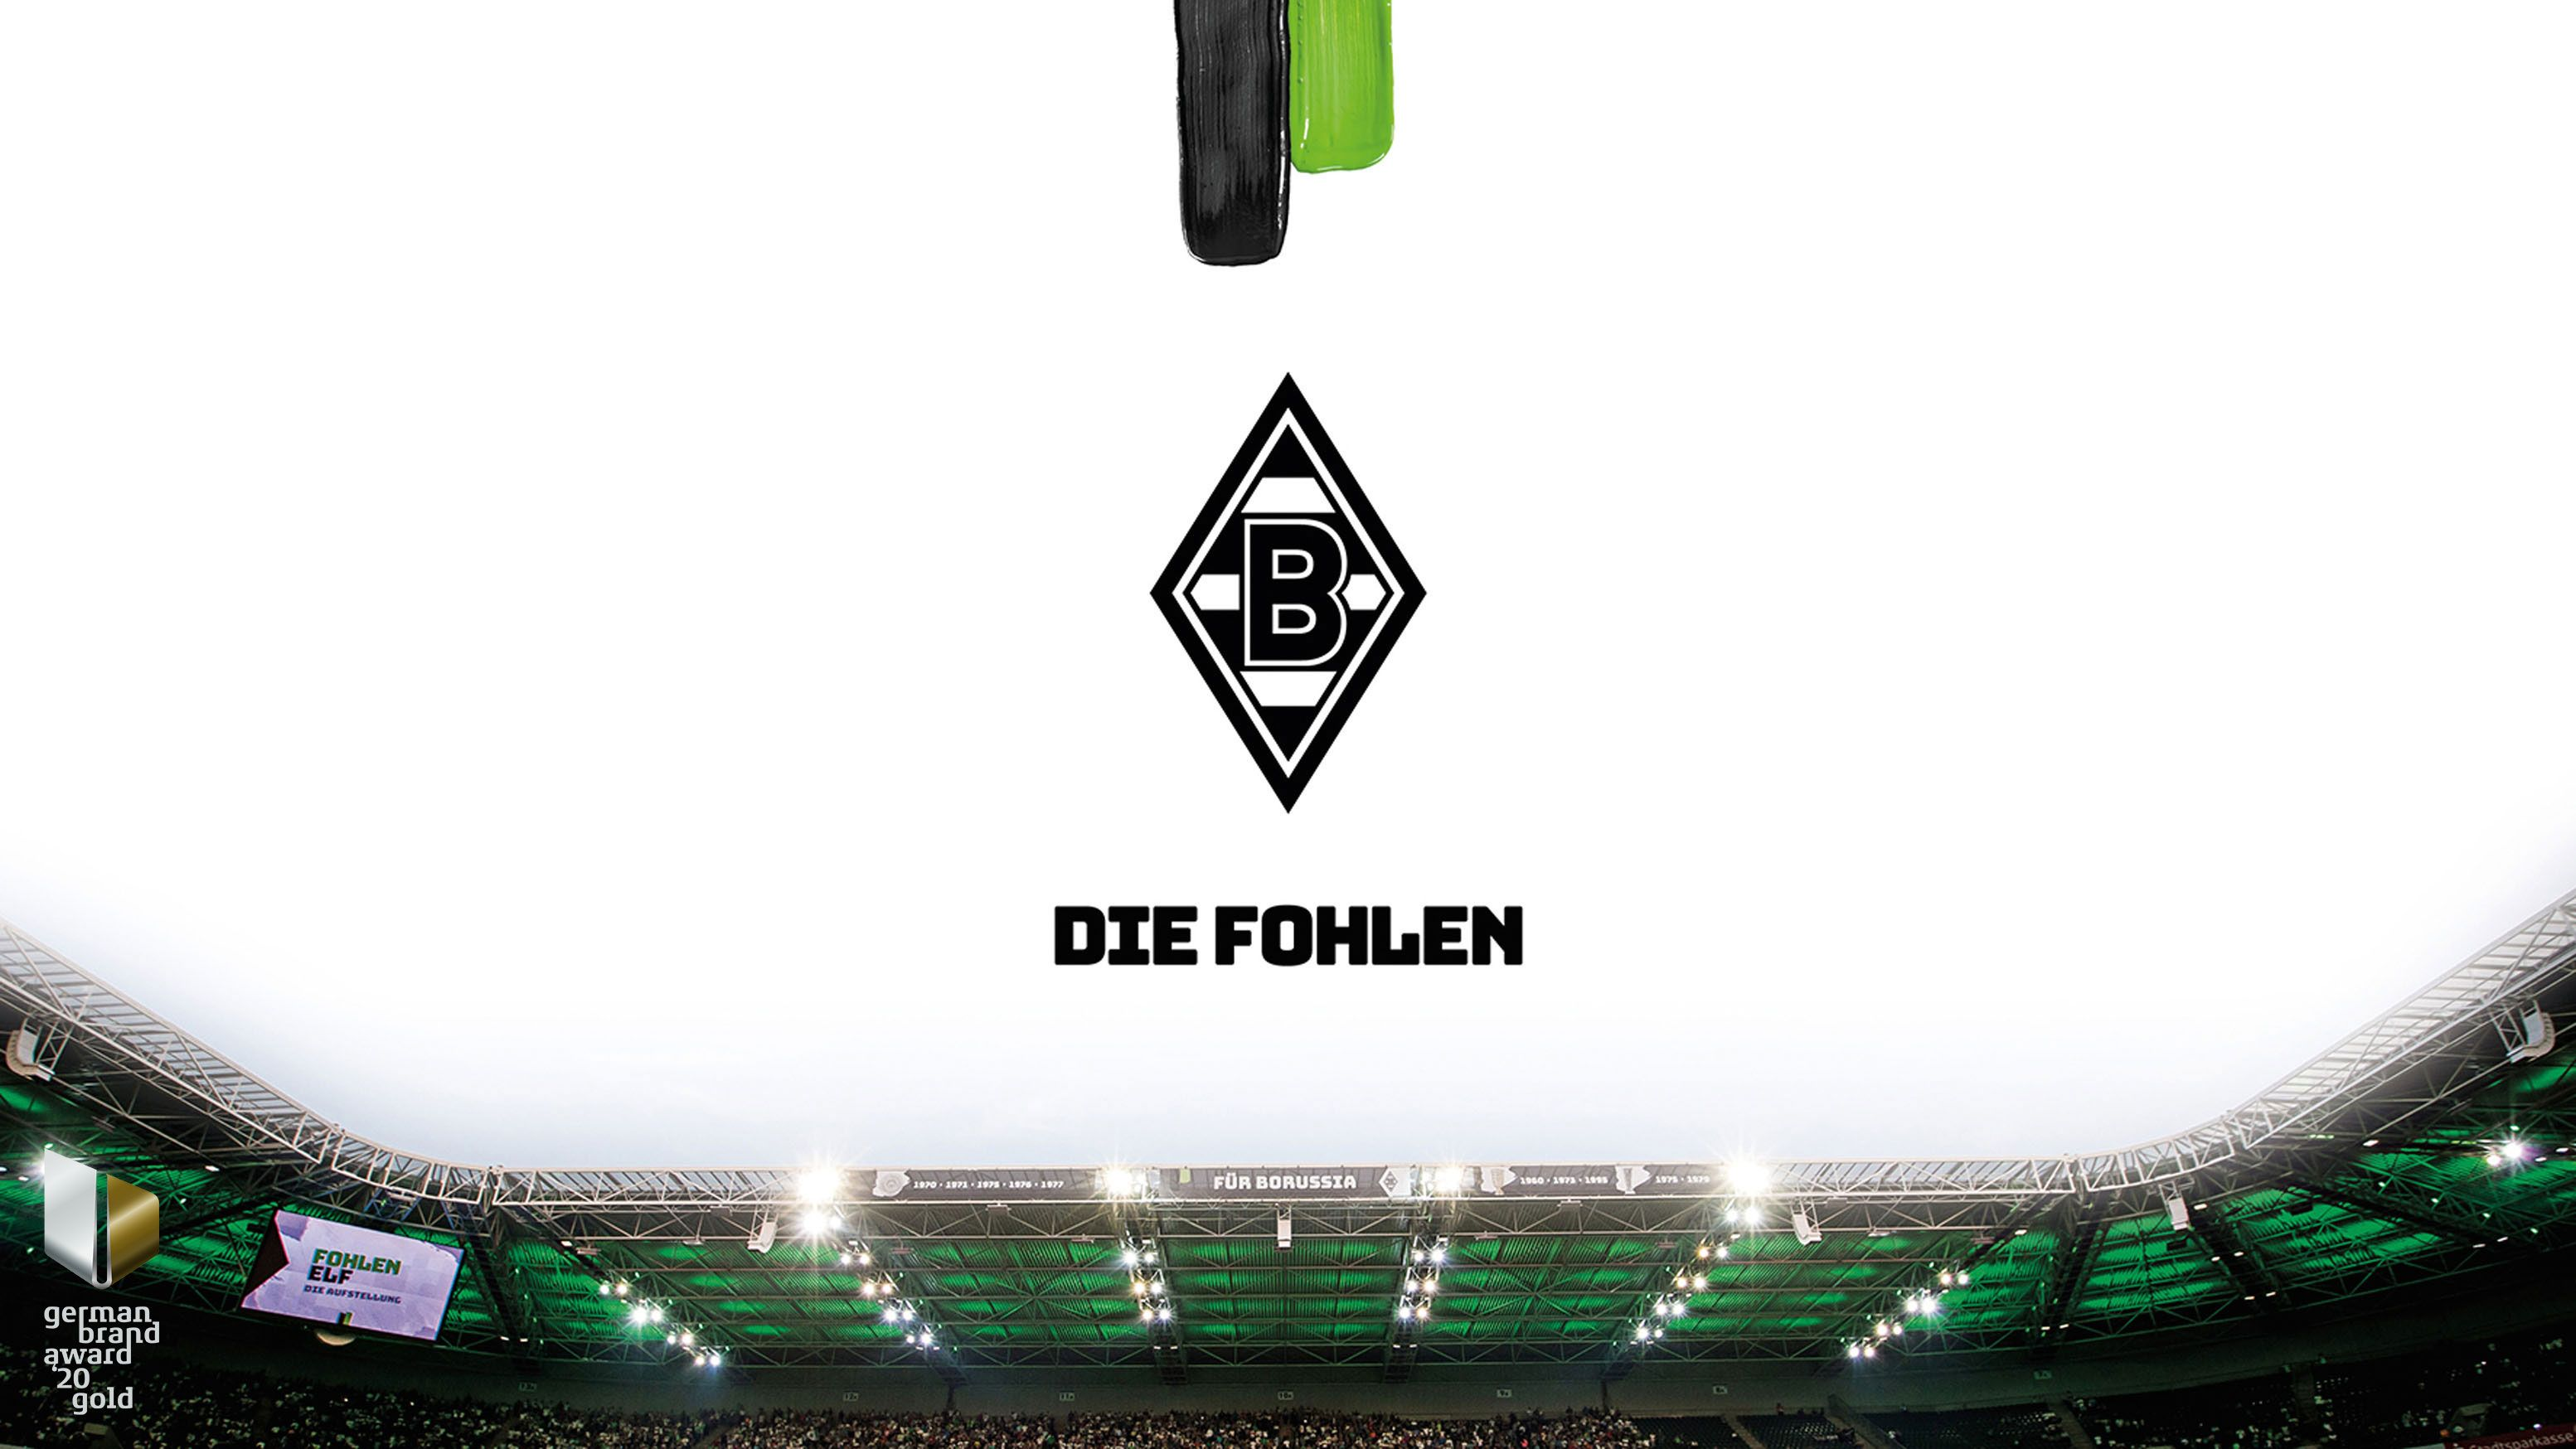 Borussia Moenchengladbach Is One Of The Most Traditional And Successful Club Brands In German Football In 2017 Bor Borussia Monchengladbach Borussia Fohlenelf